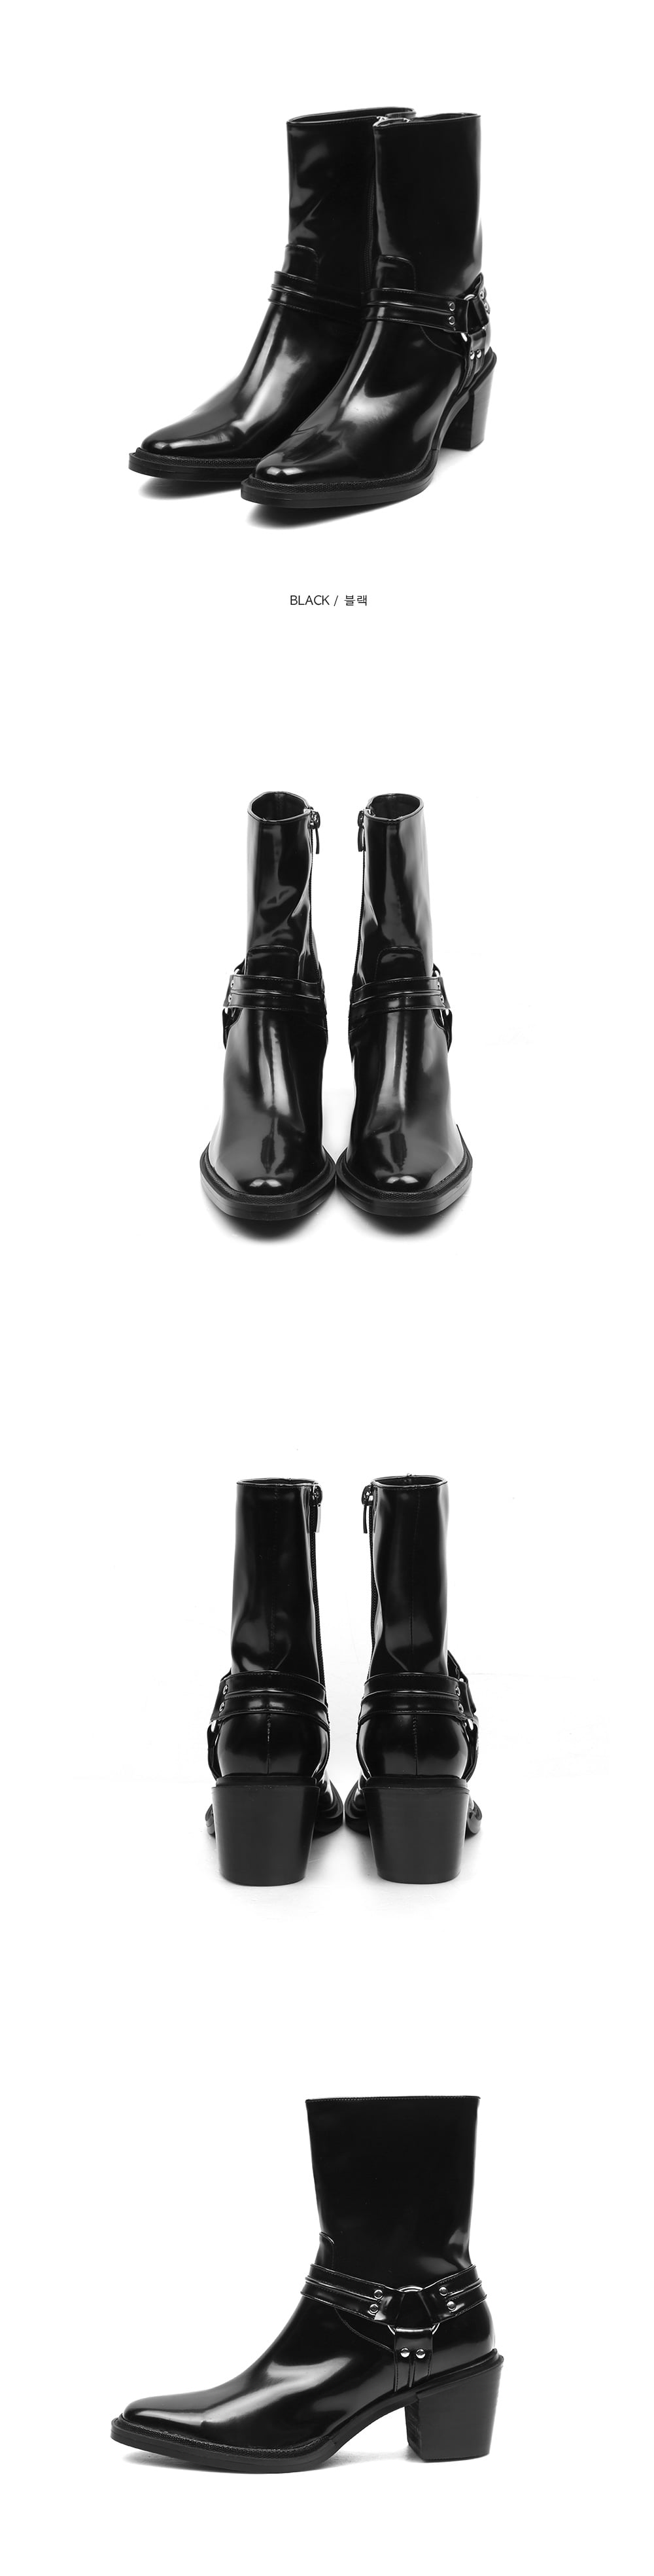 ACIDITY - WESTERN SLIM LEATHER ANKLE BOOTS